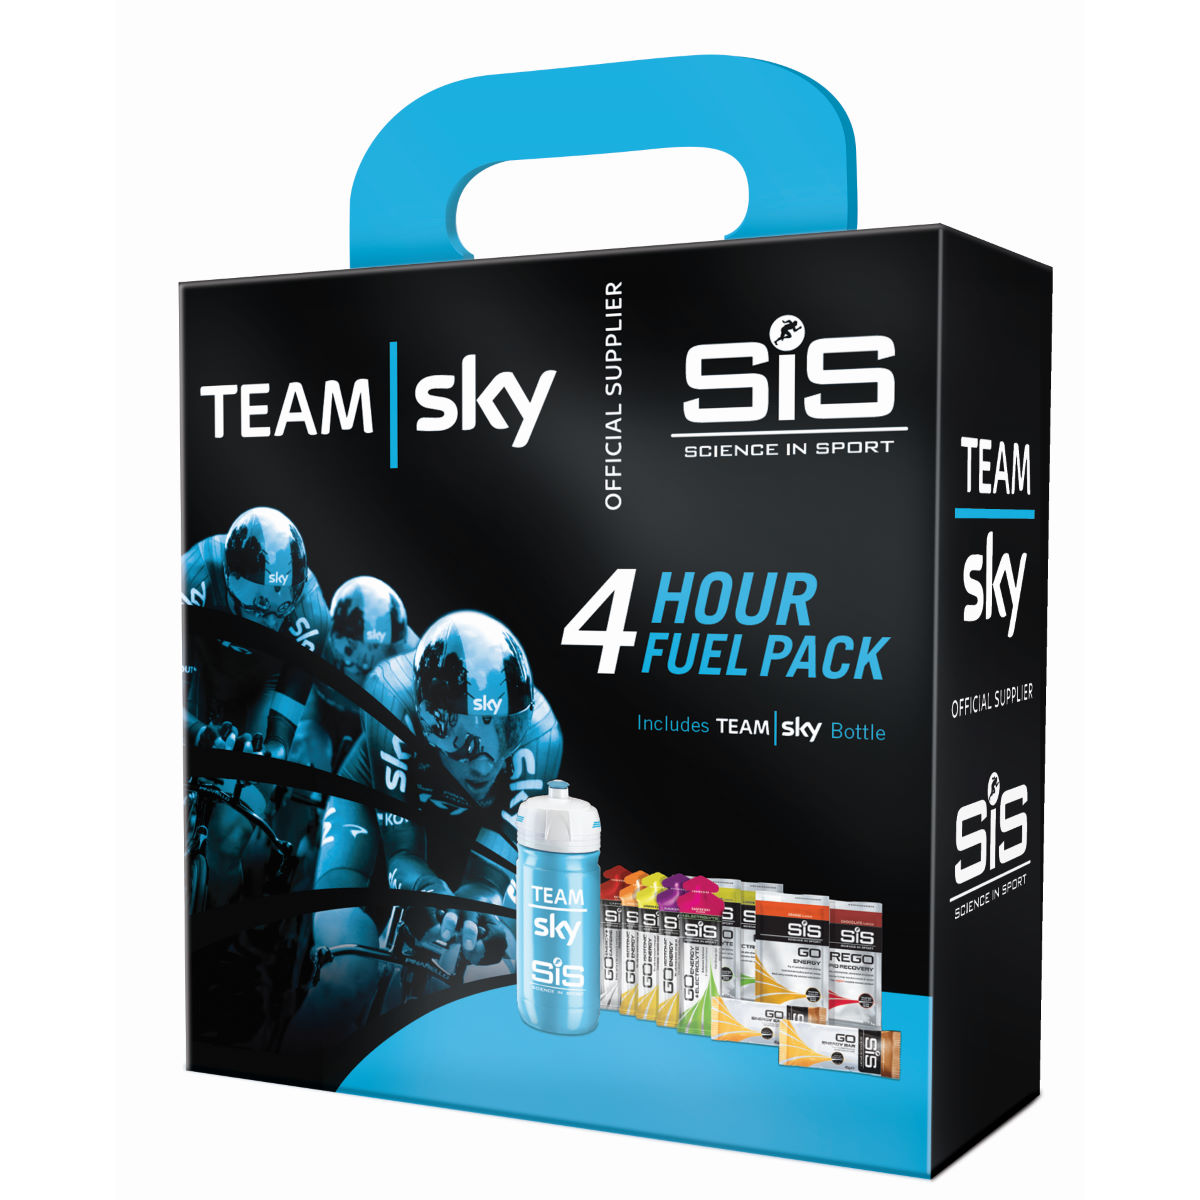 Pack de course Science in Sport Team Sky (4 heures) - Mixed